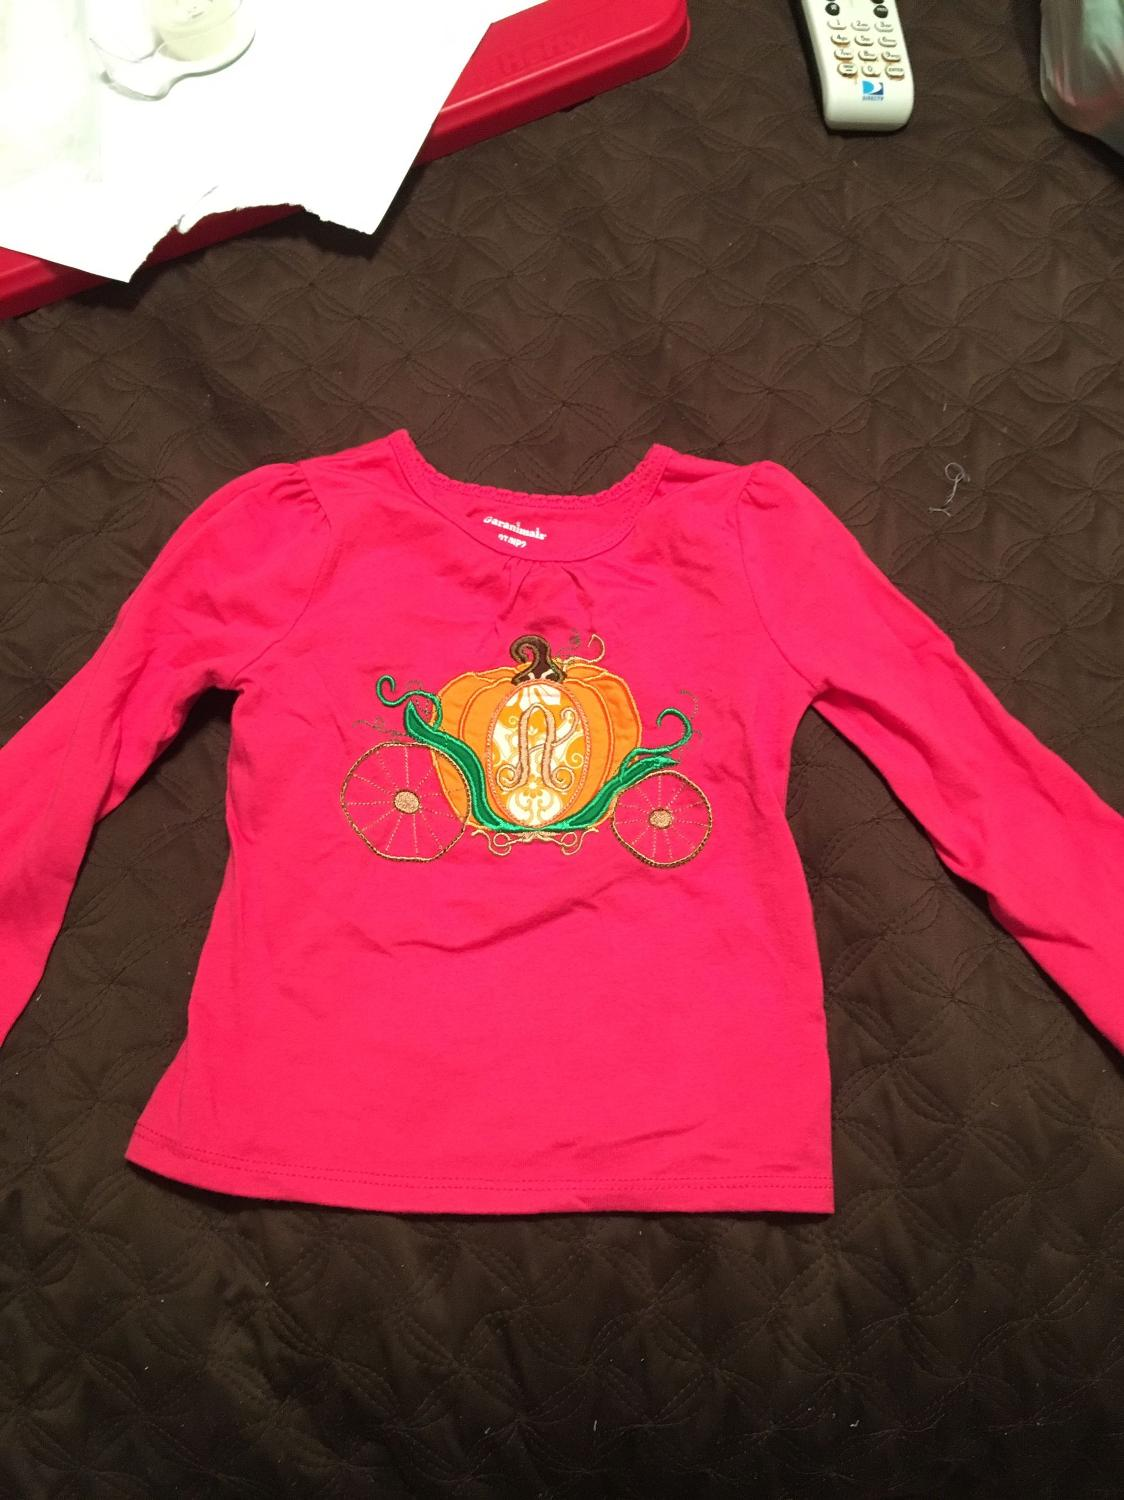 Best a monogrammed appliqu shirt for sale in mobile for Applique shirts for sale